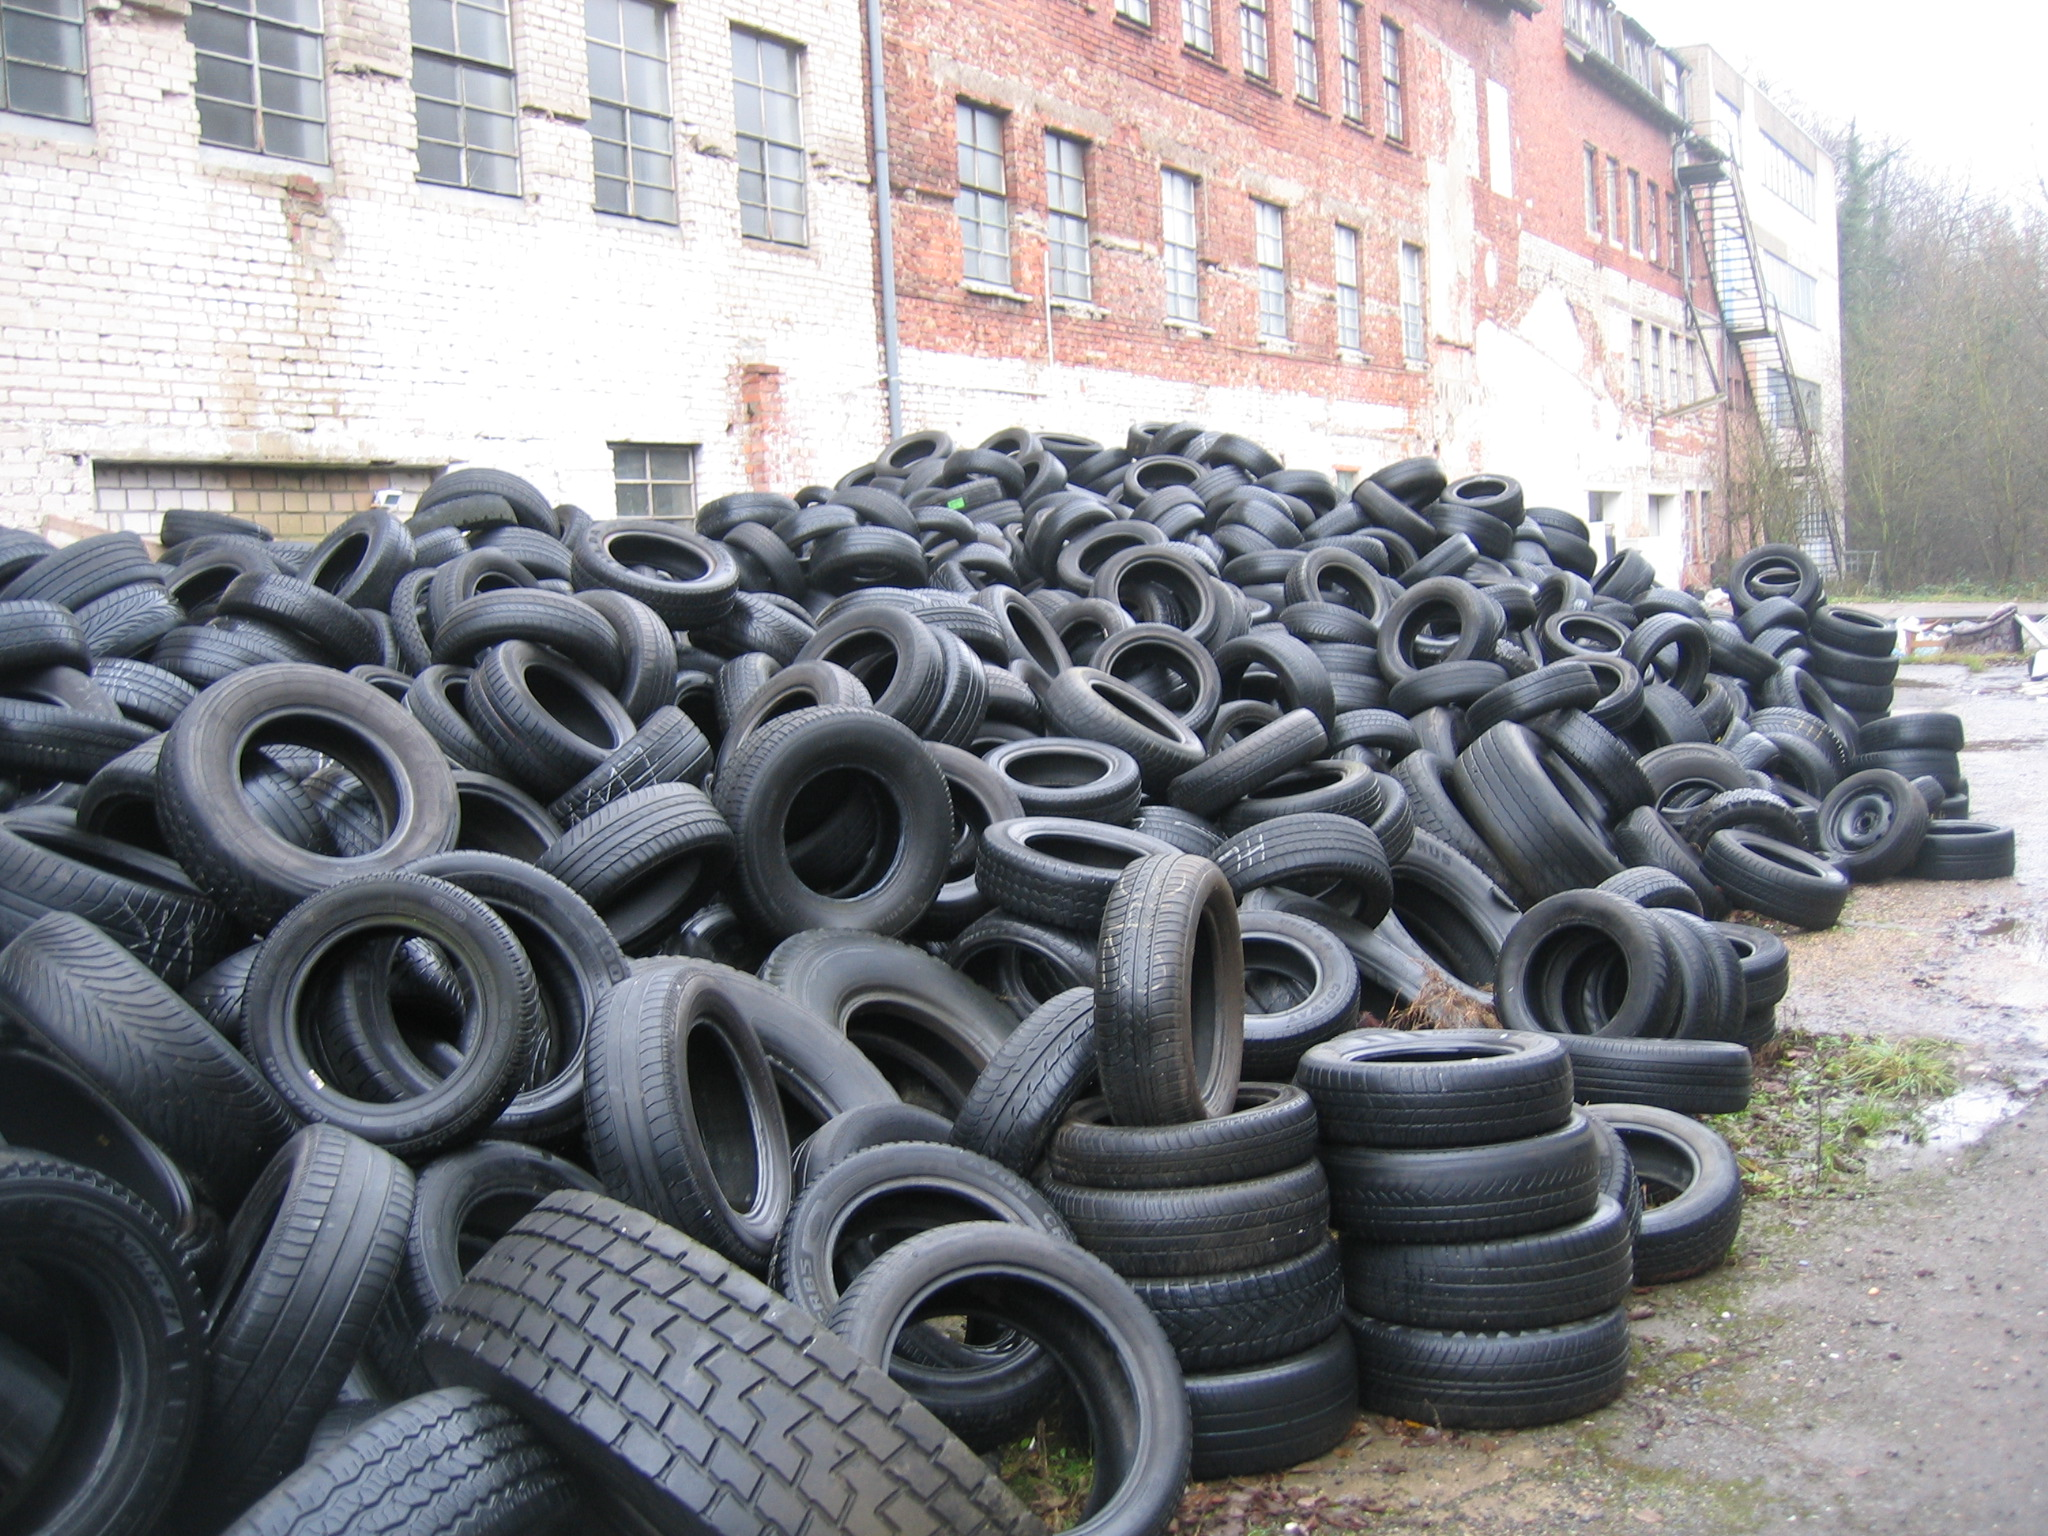 Millions Of Old Tires Spark Recycling Frenzy Cleantechnica